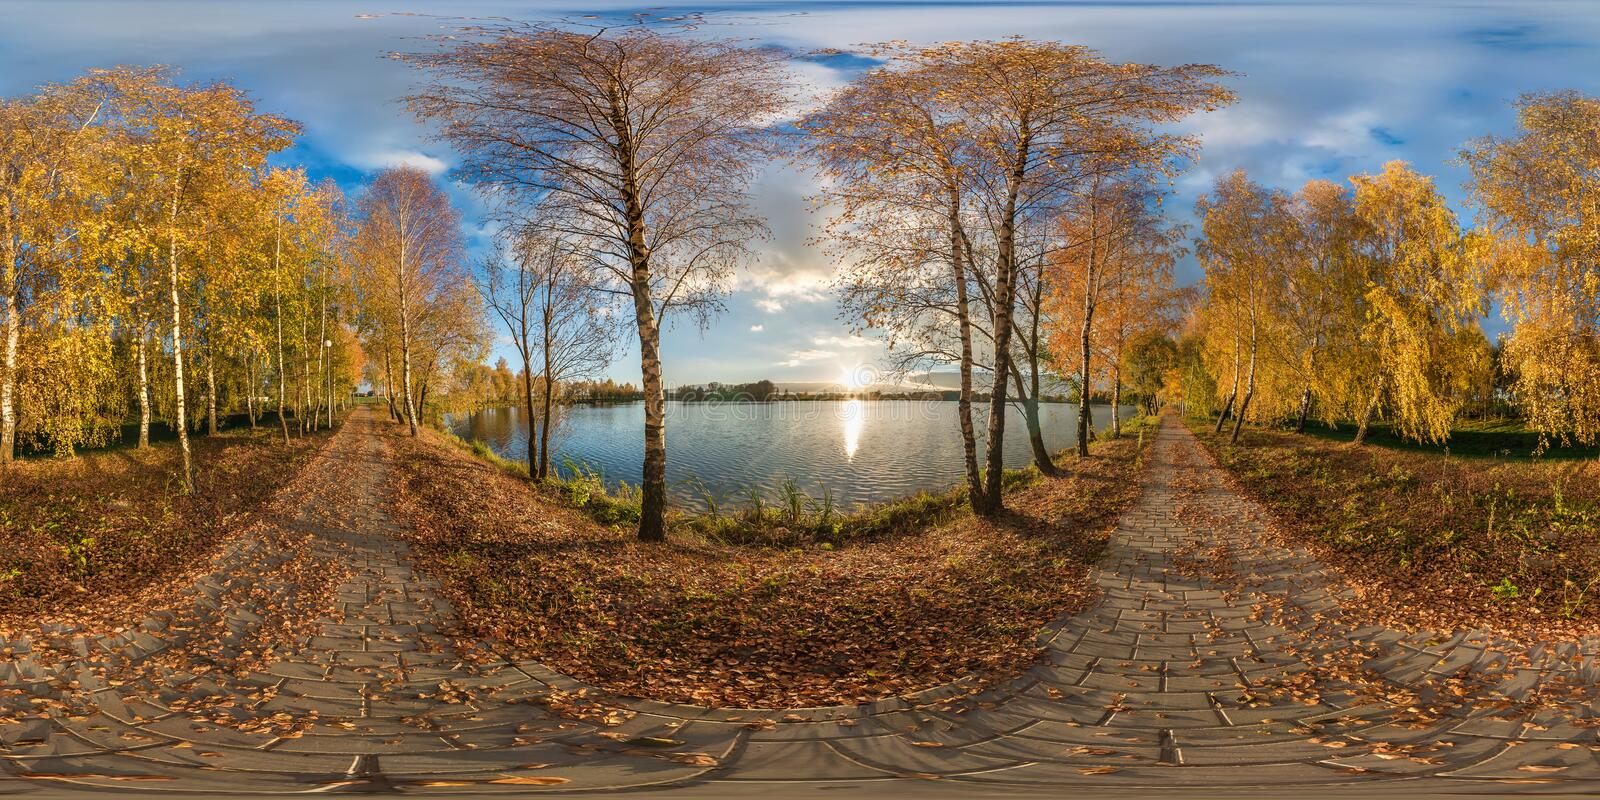 Full seamless spherical panorama 360 degrees angle view golden autumn near the shore of wide lake in sunny day. 360 panorama in royalty free stock images